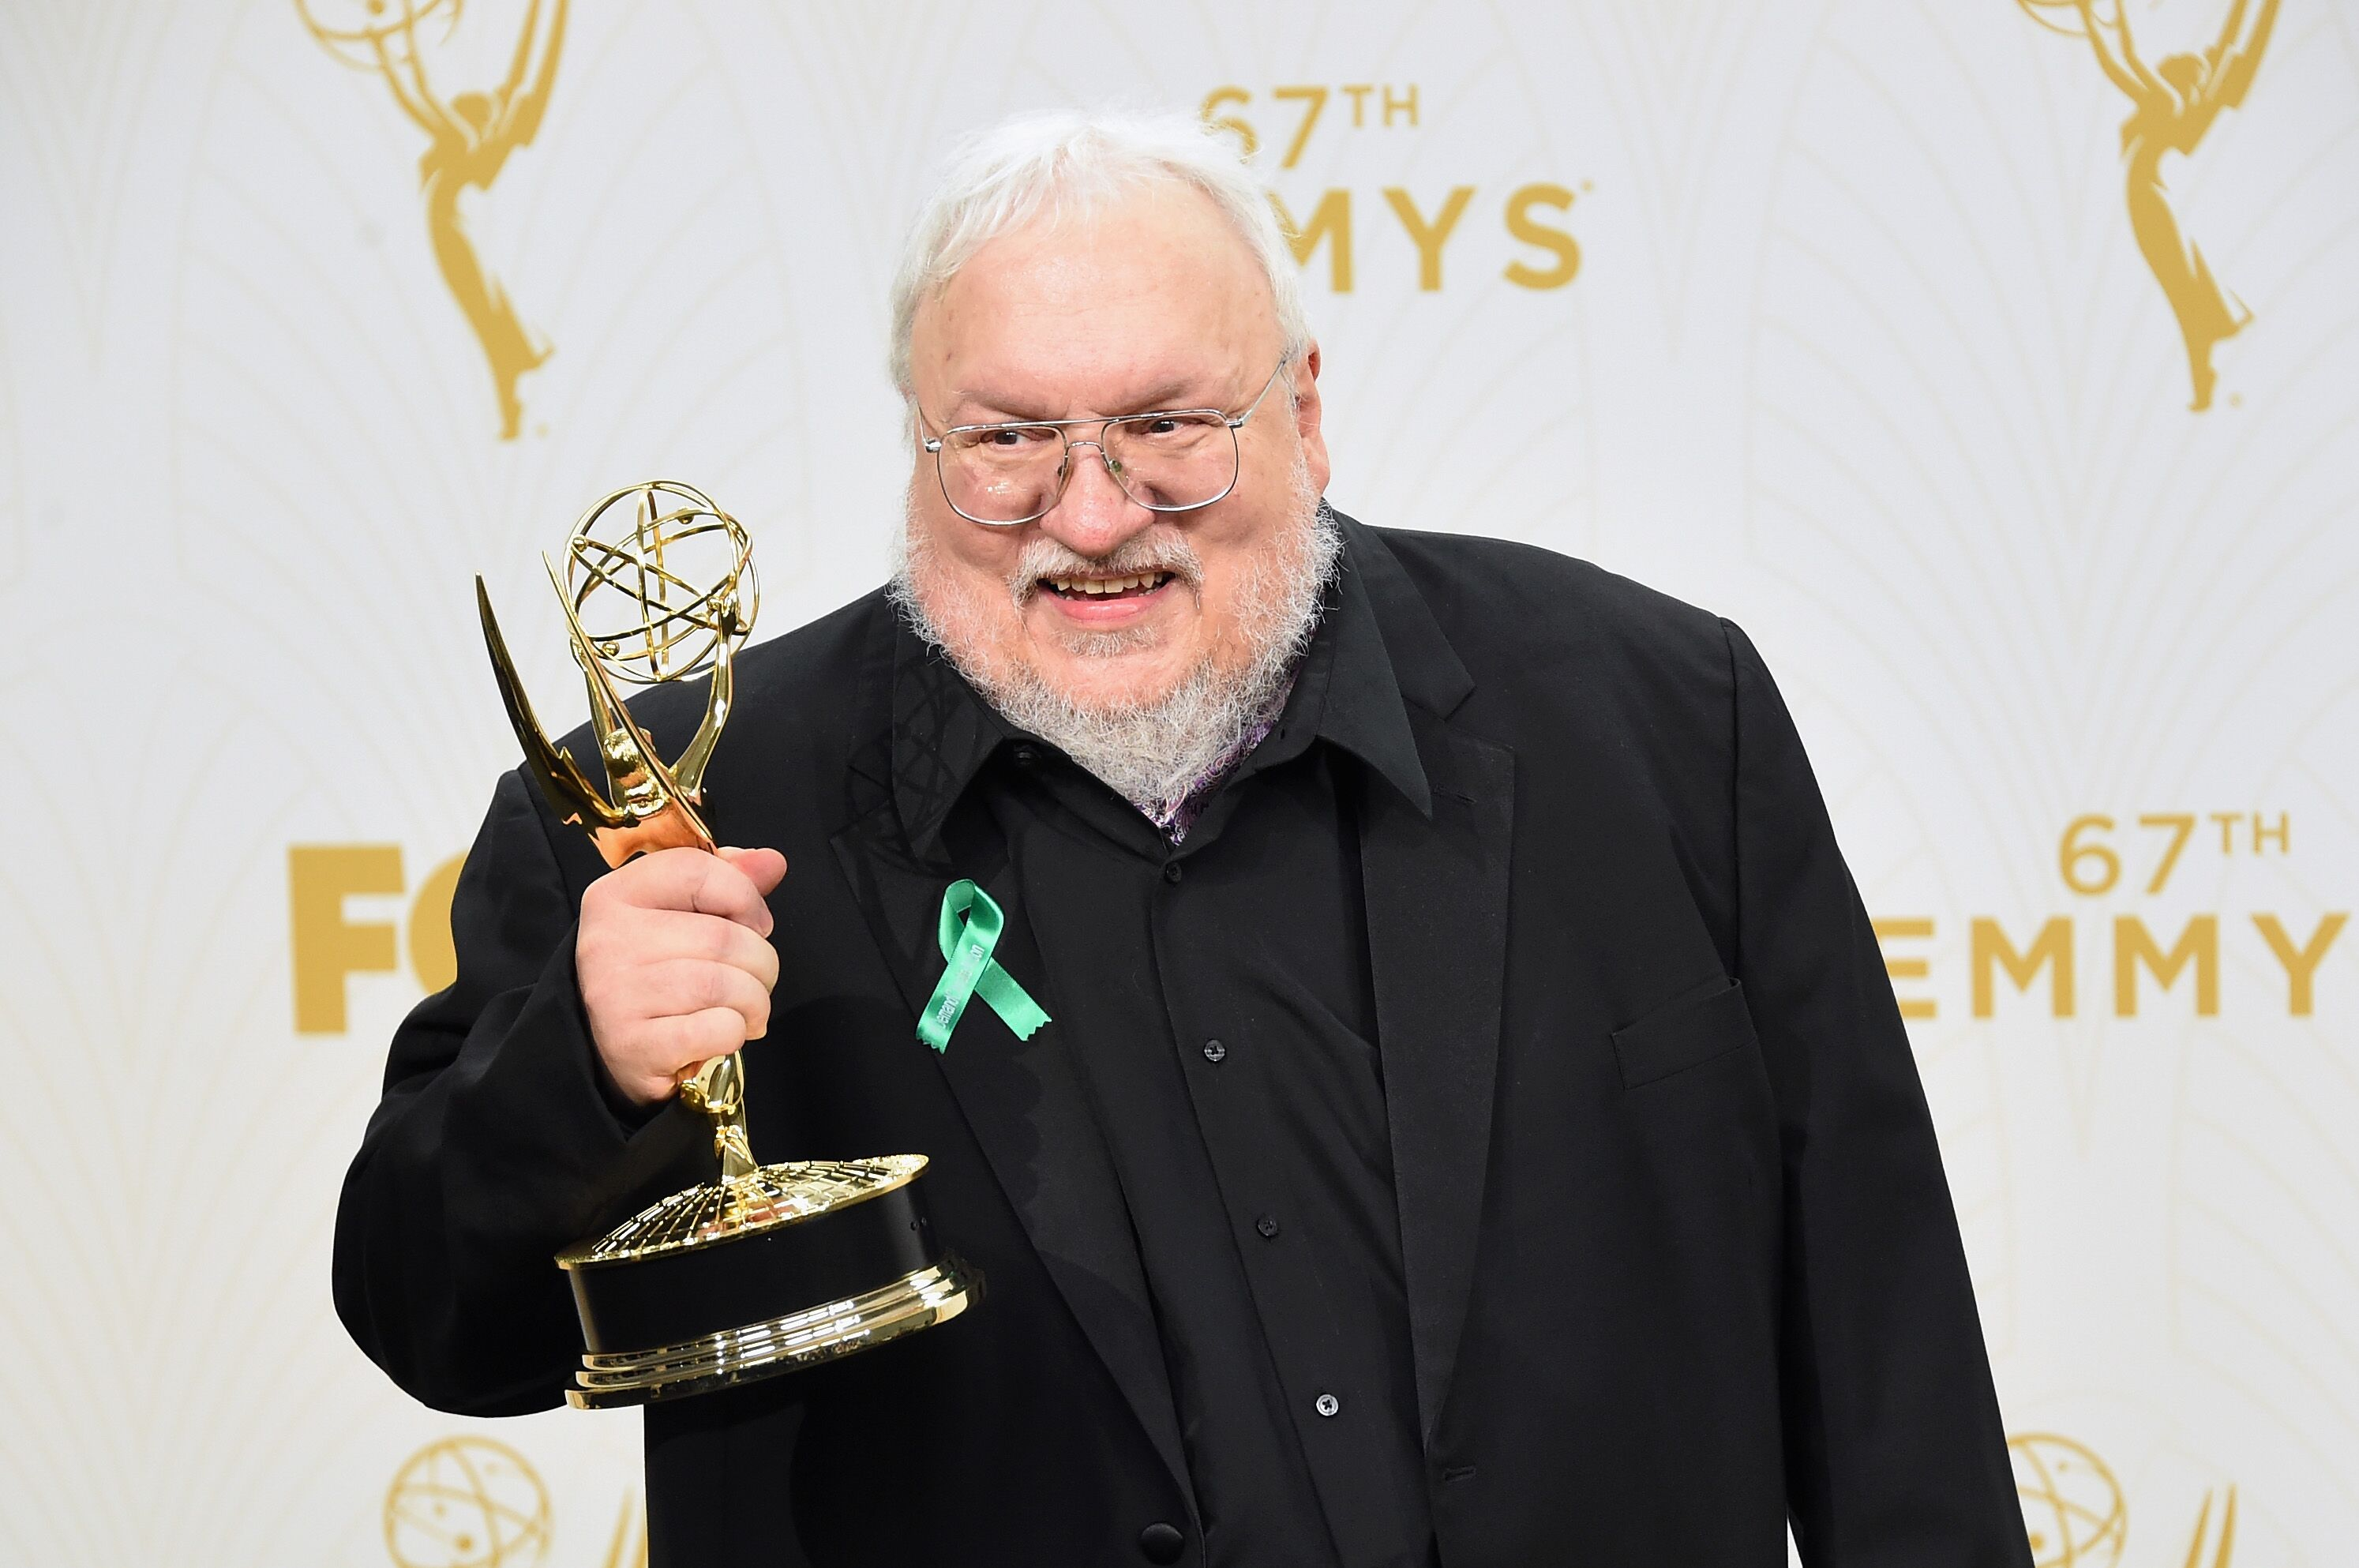 LOS ANGELES, CA - SEPTEMBER 20: Writer George R. R. Martin, winner of Outstanding Drama Series for'Game of Thrones', poses in the press room at the 67th Annual Primetime Emmy Awards at Microsoft Theater on September 20, 2015 in Los Angeles, California. (Photo by Jason Merritt/Getty Images)